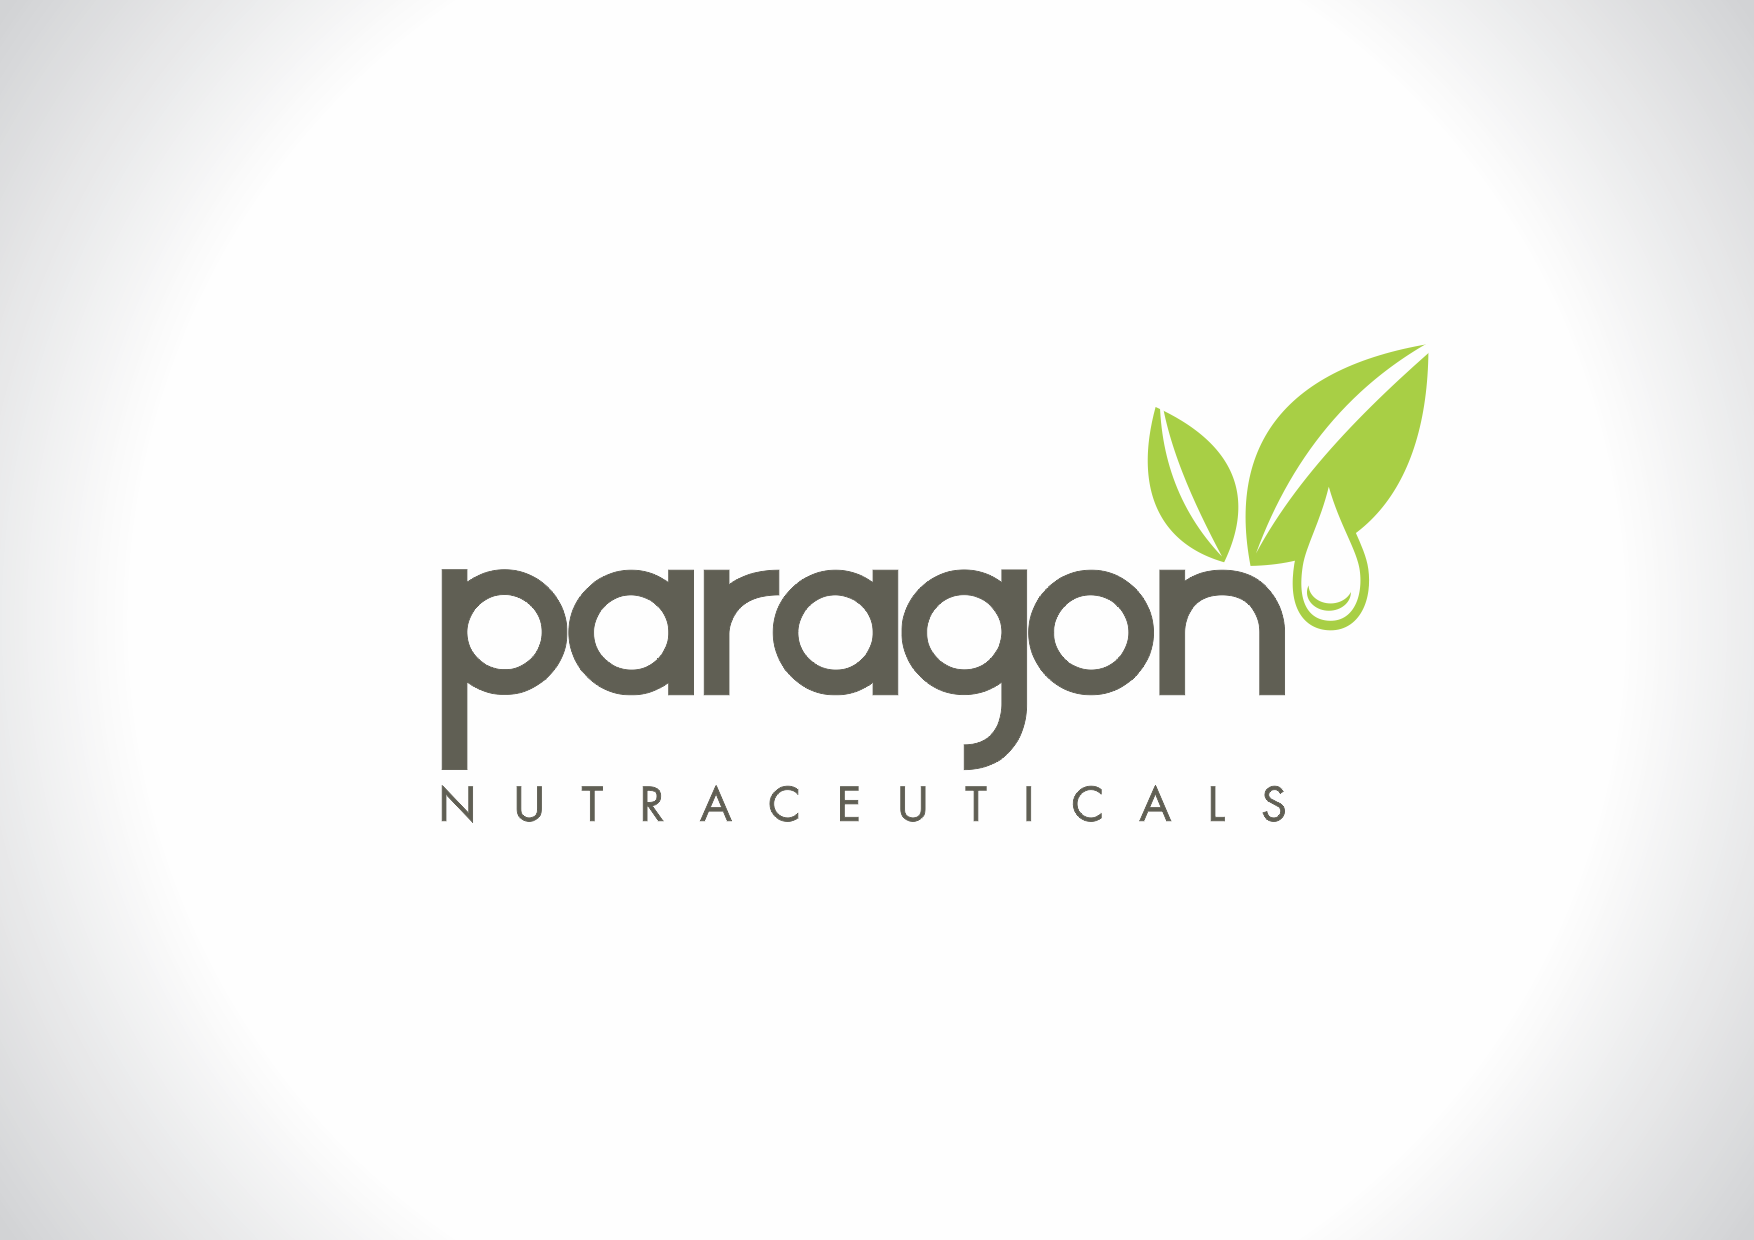 Nutraceutical / energy drink company logo by Paragon